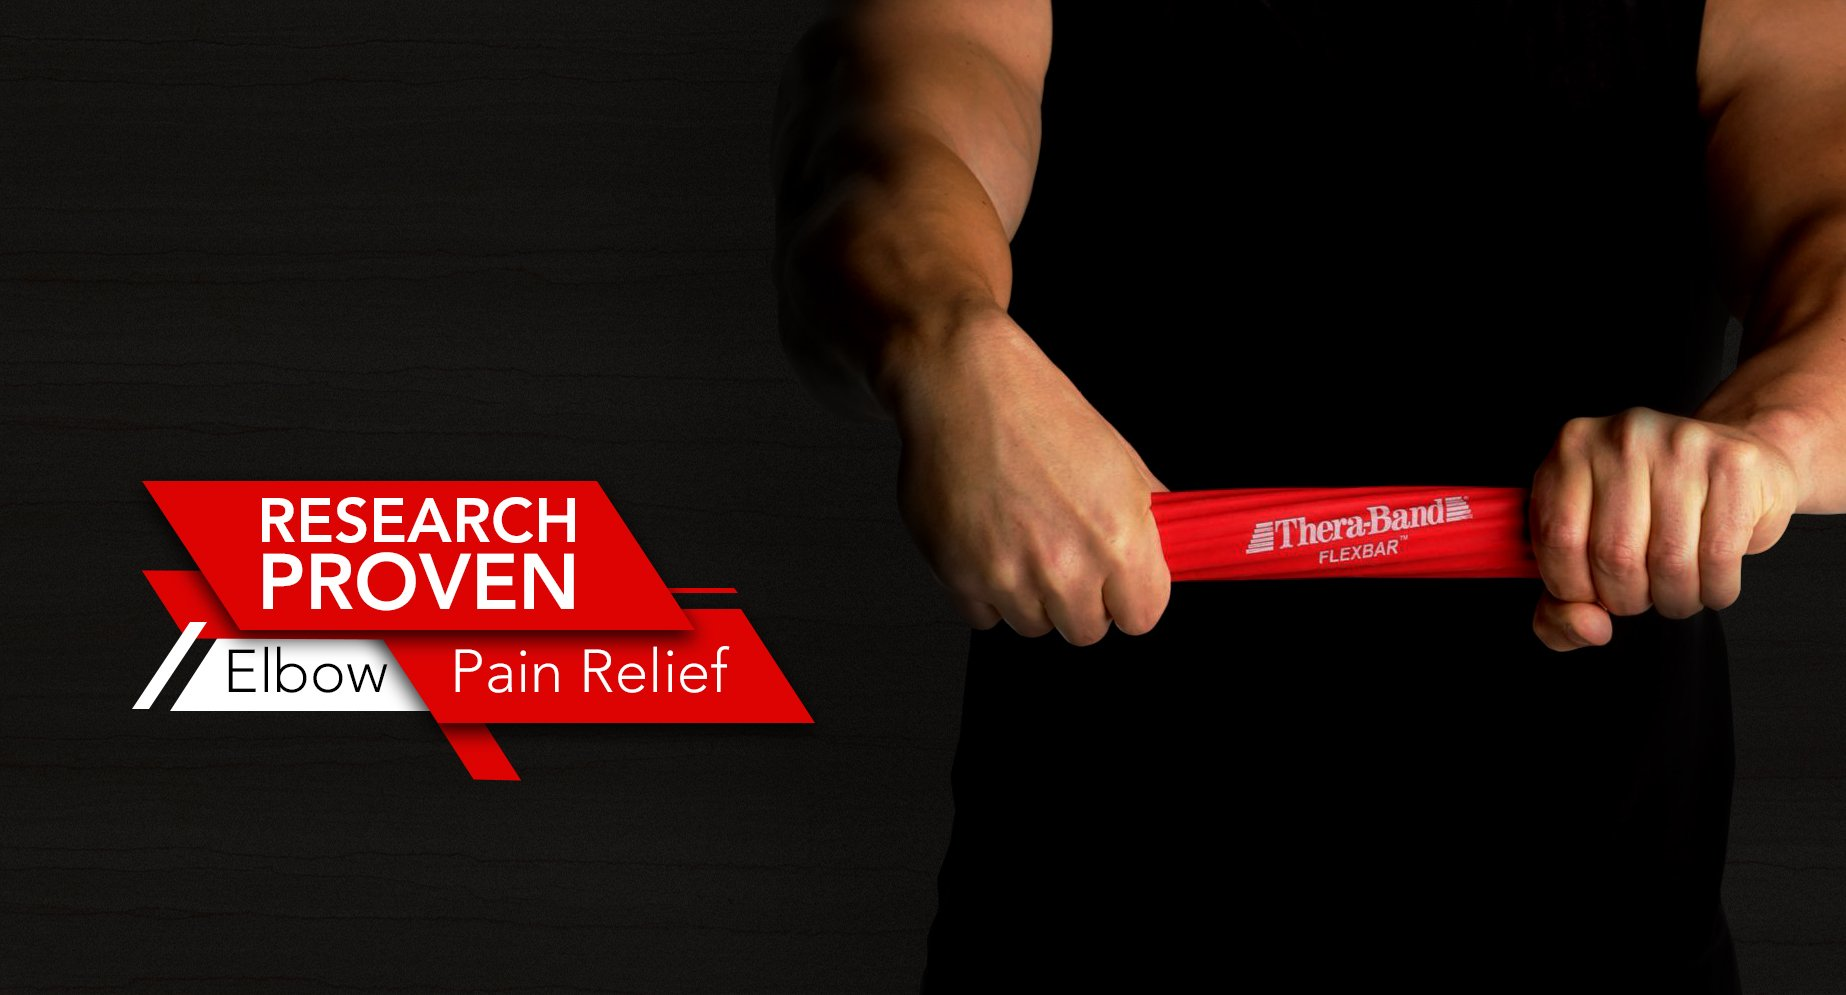 TheraBand FlexBar, Tennis Elbow Therapy Bar, Relieve Tendonitis Pain & Improve Grip Strength, Resistance Bar for Golfers Elbow & Tendinitis, Red, Light, Beginner by TheraBand (Image #2)